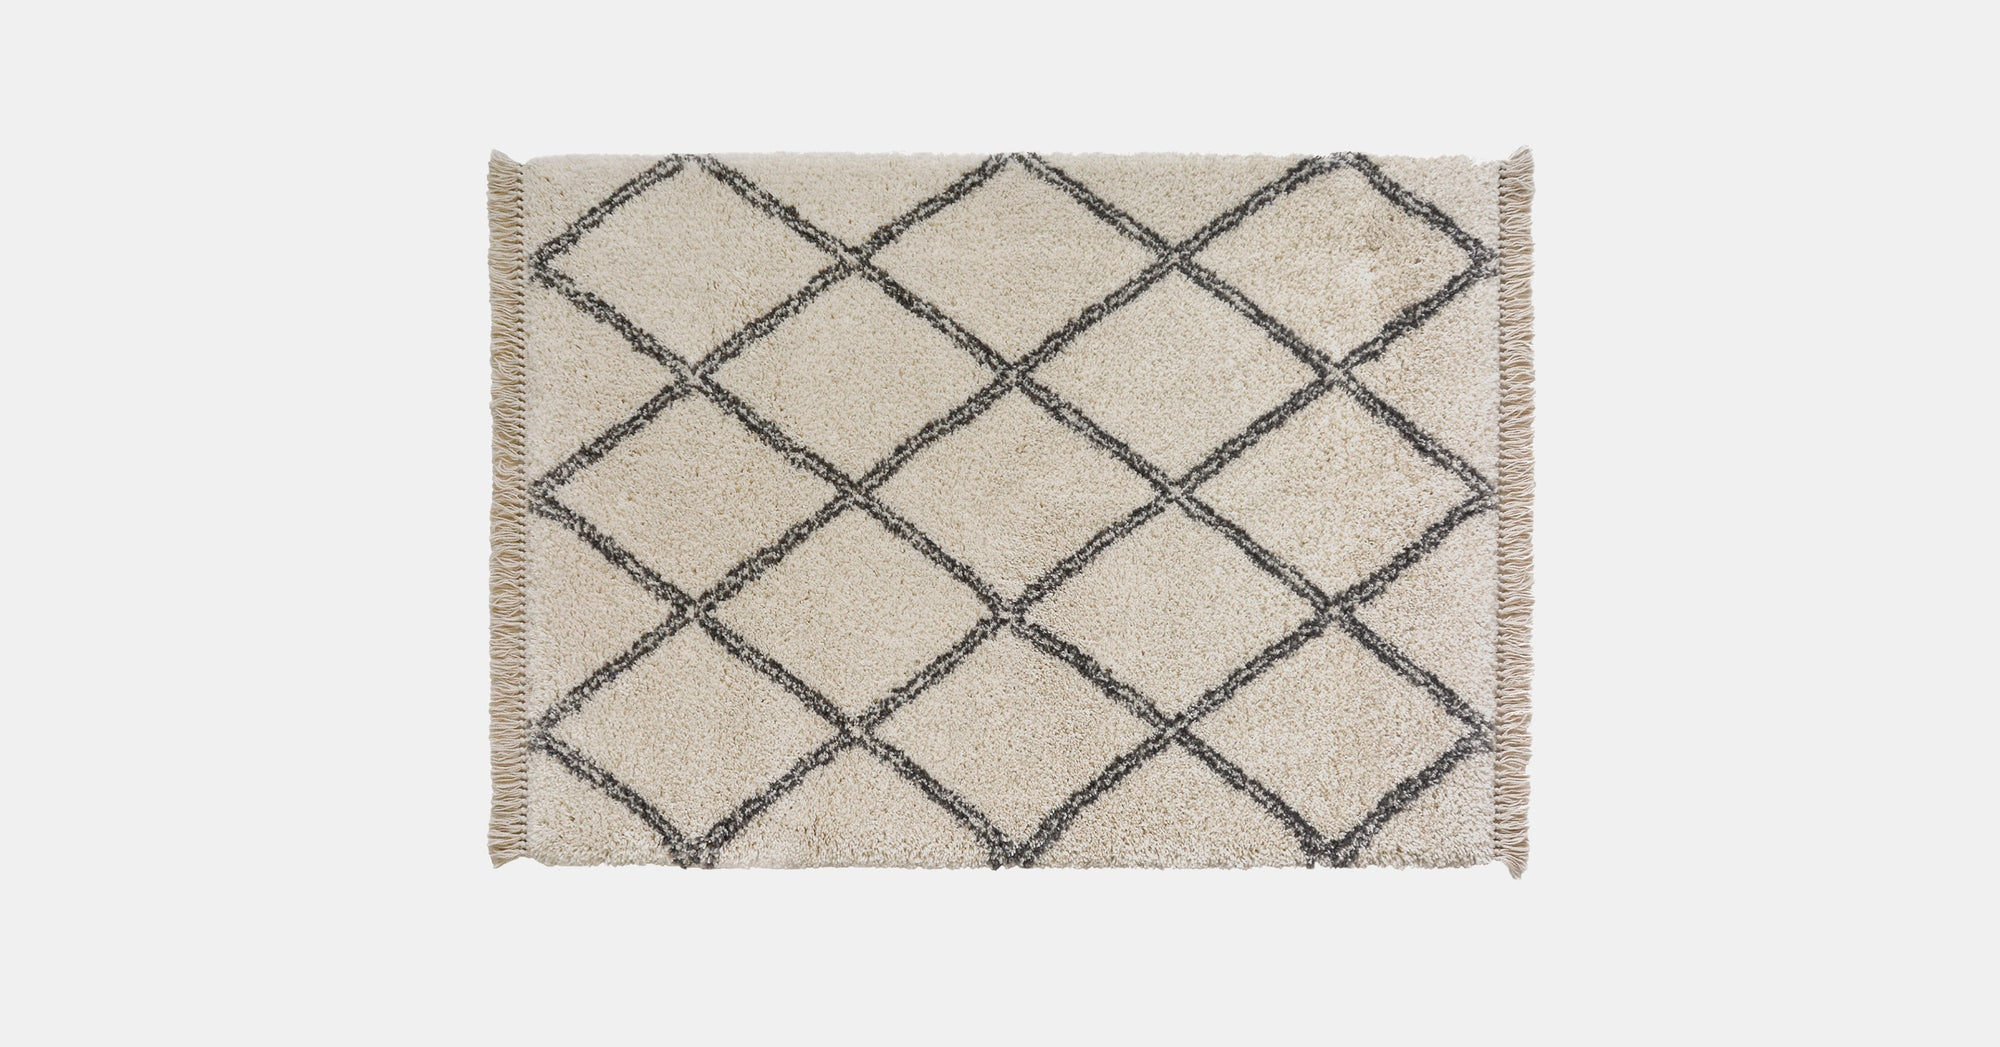 Reza berber style rug, natural | Rugs by housecosy